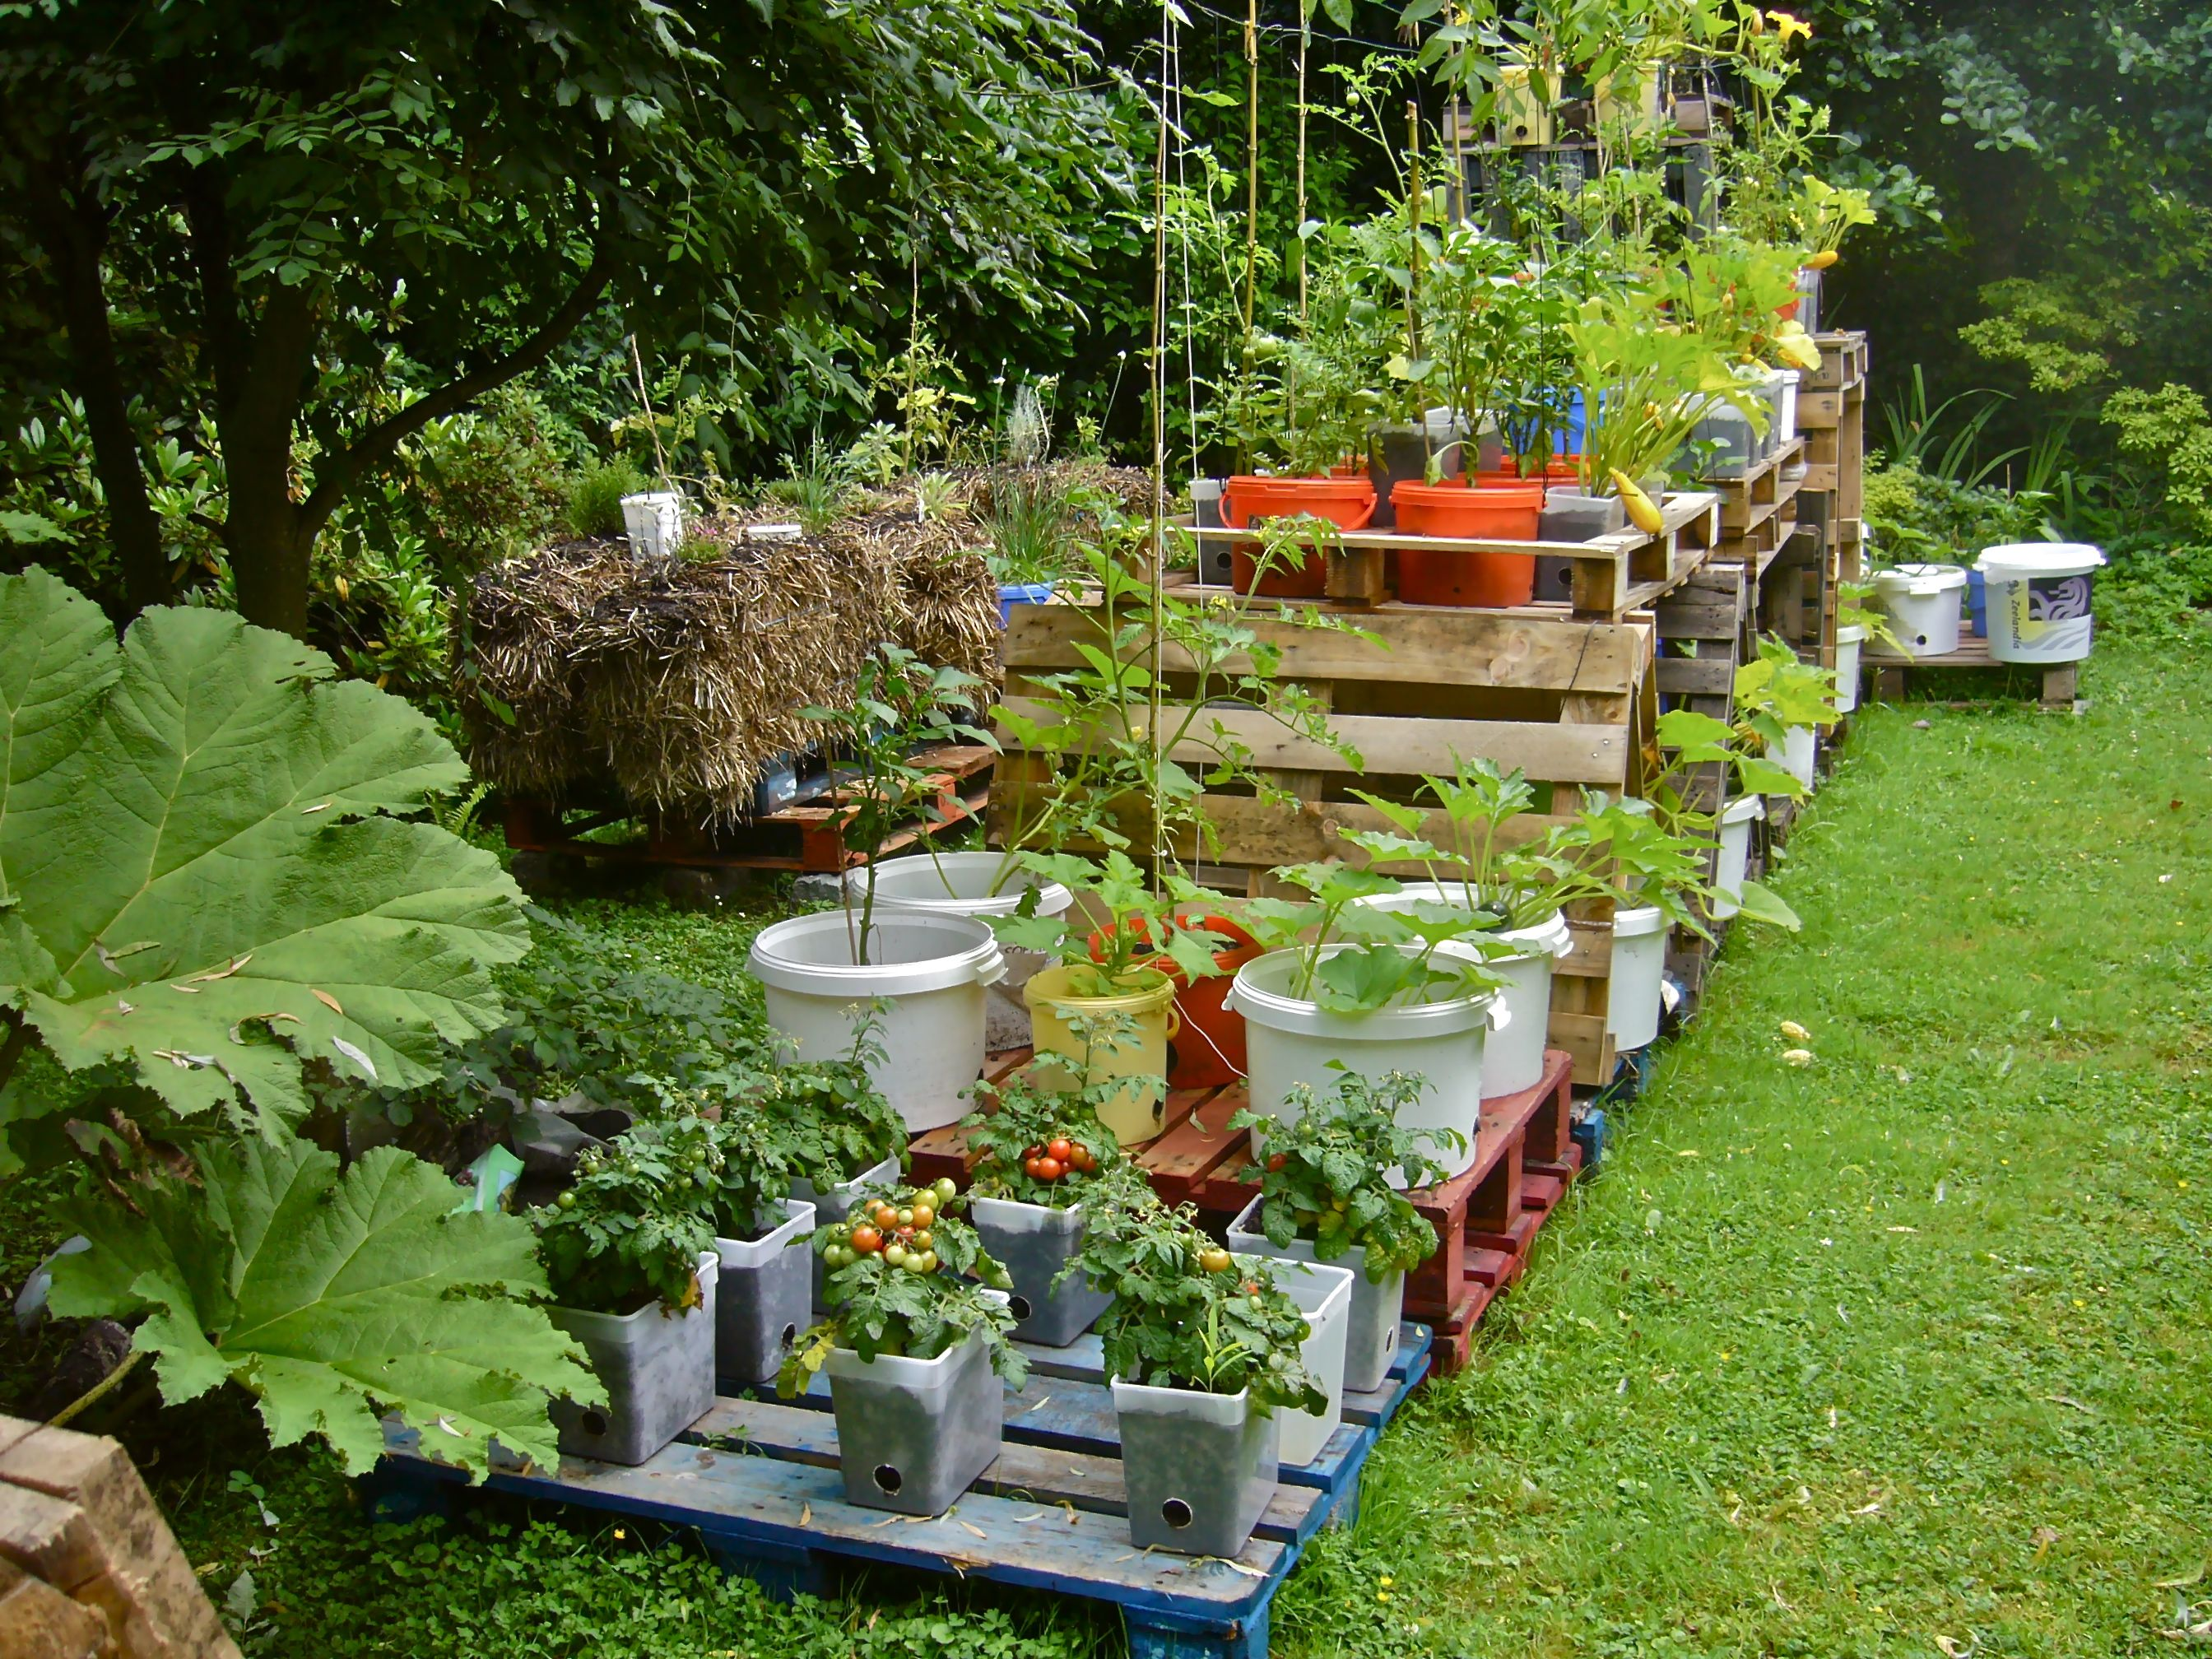 17 Best images about container gardens on Pinterest Gardens